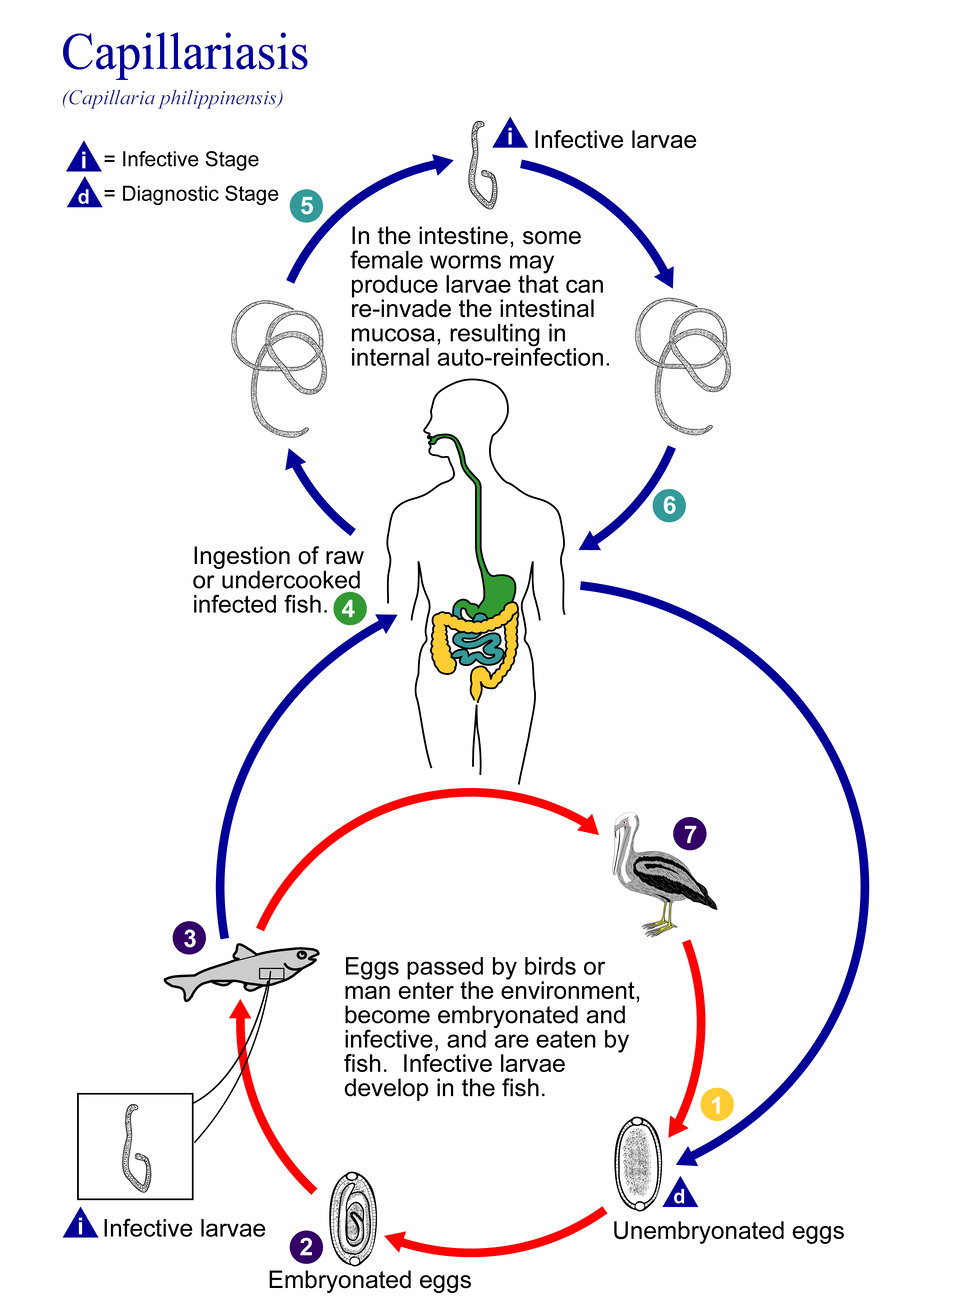 This illustration depicts the life cycle of Capillaria philippinensis, one of the causal agents of Capillariasis.